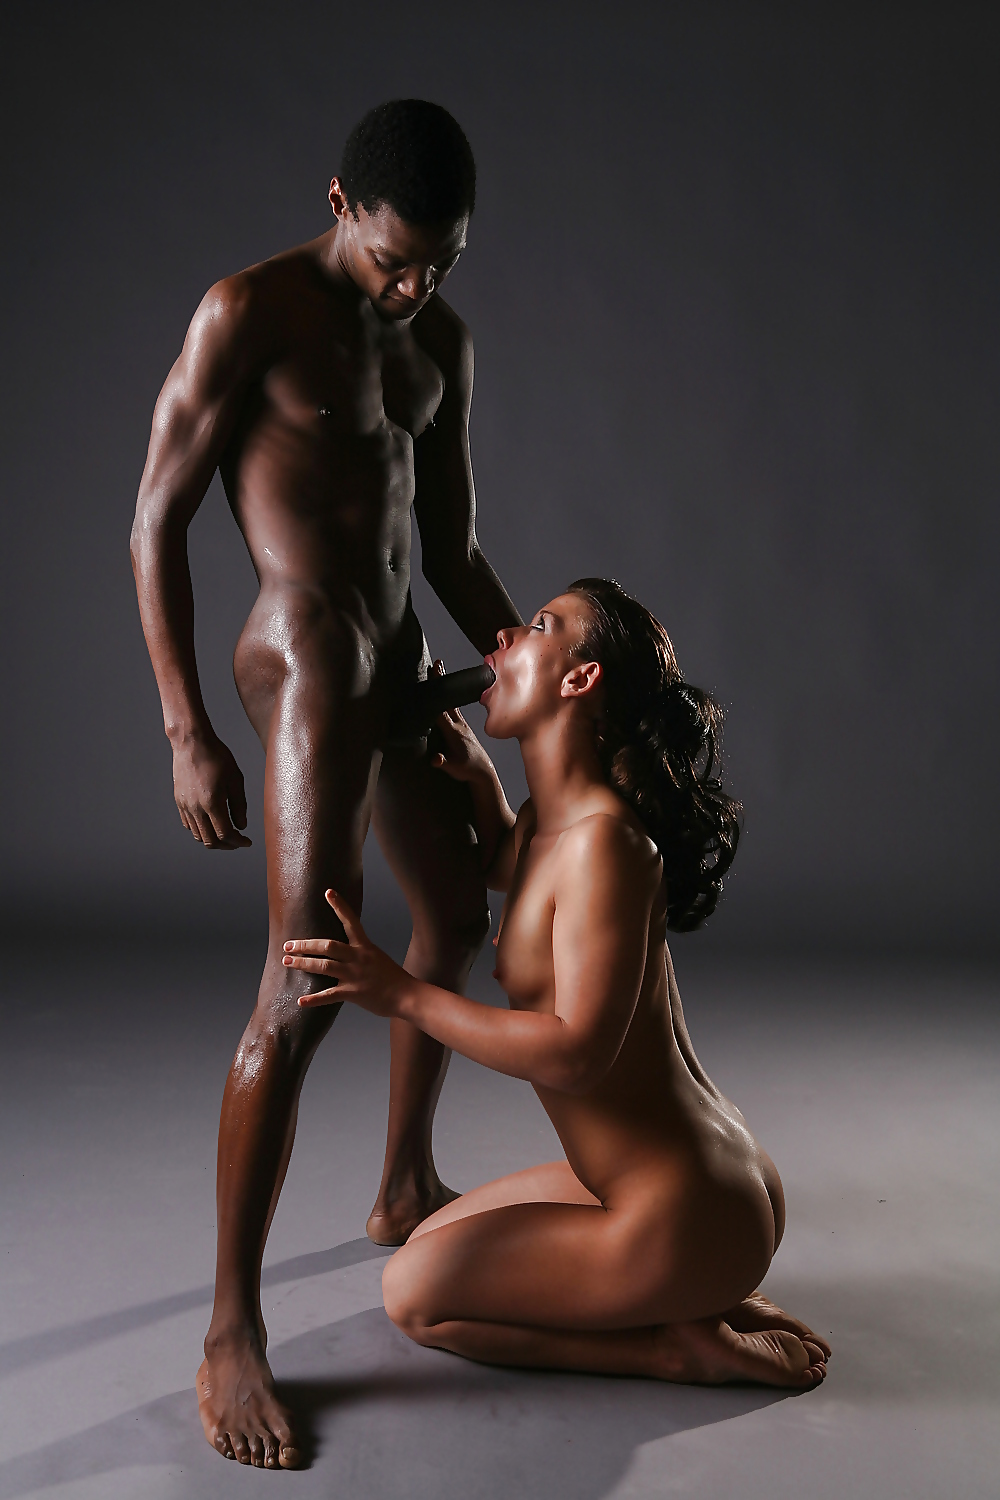 Erotic interracial fiction — photo 4